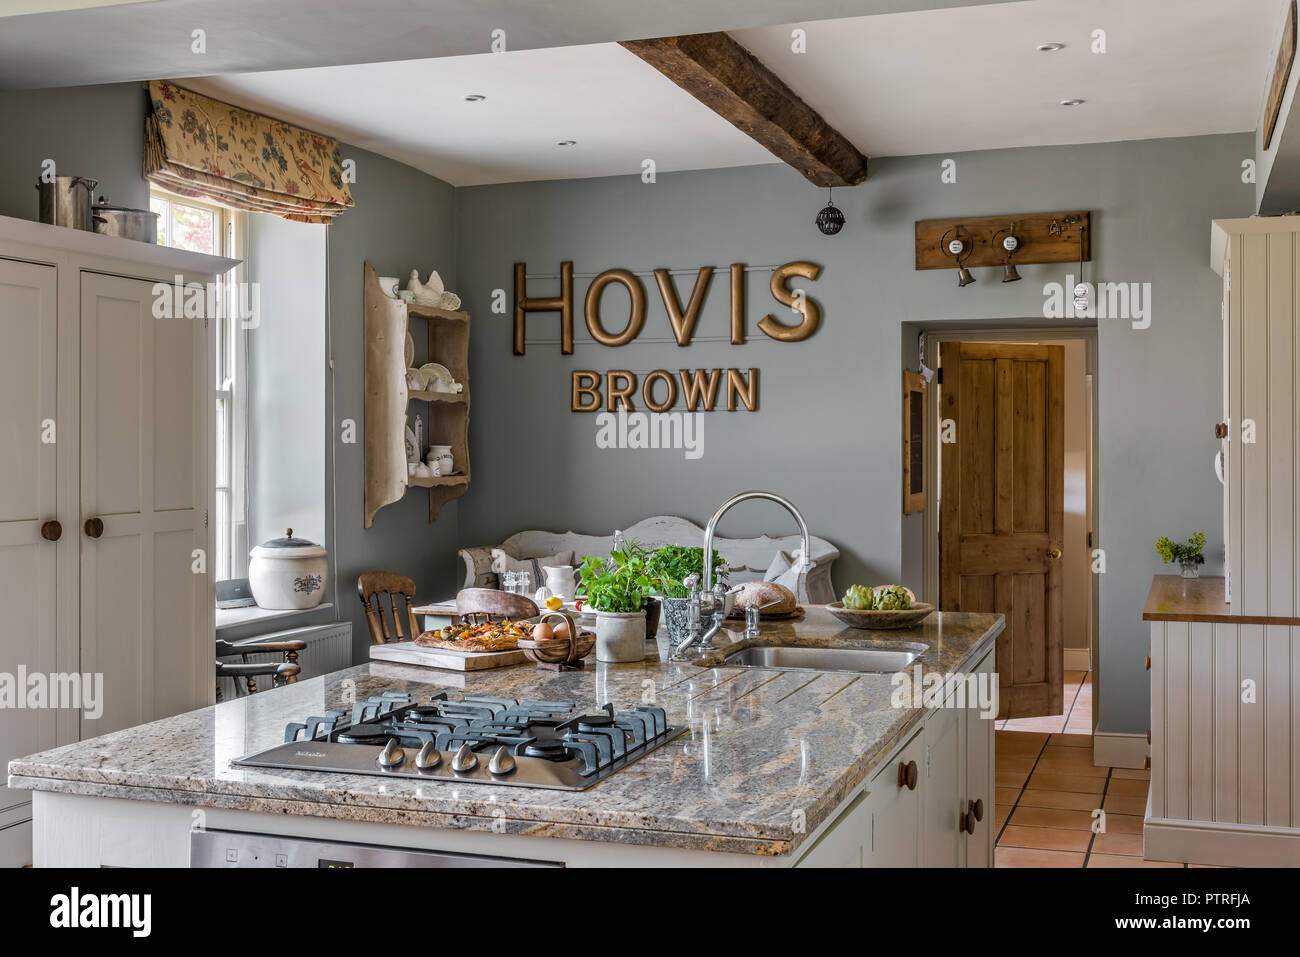 'HOVIS' lettering in kitchen with gas hob fitted to island unit in restored 16th century farmhouse - Stock Image